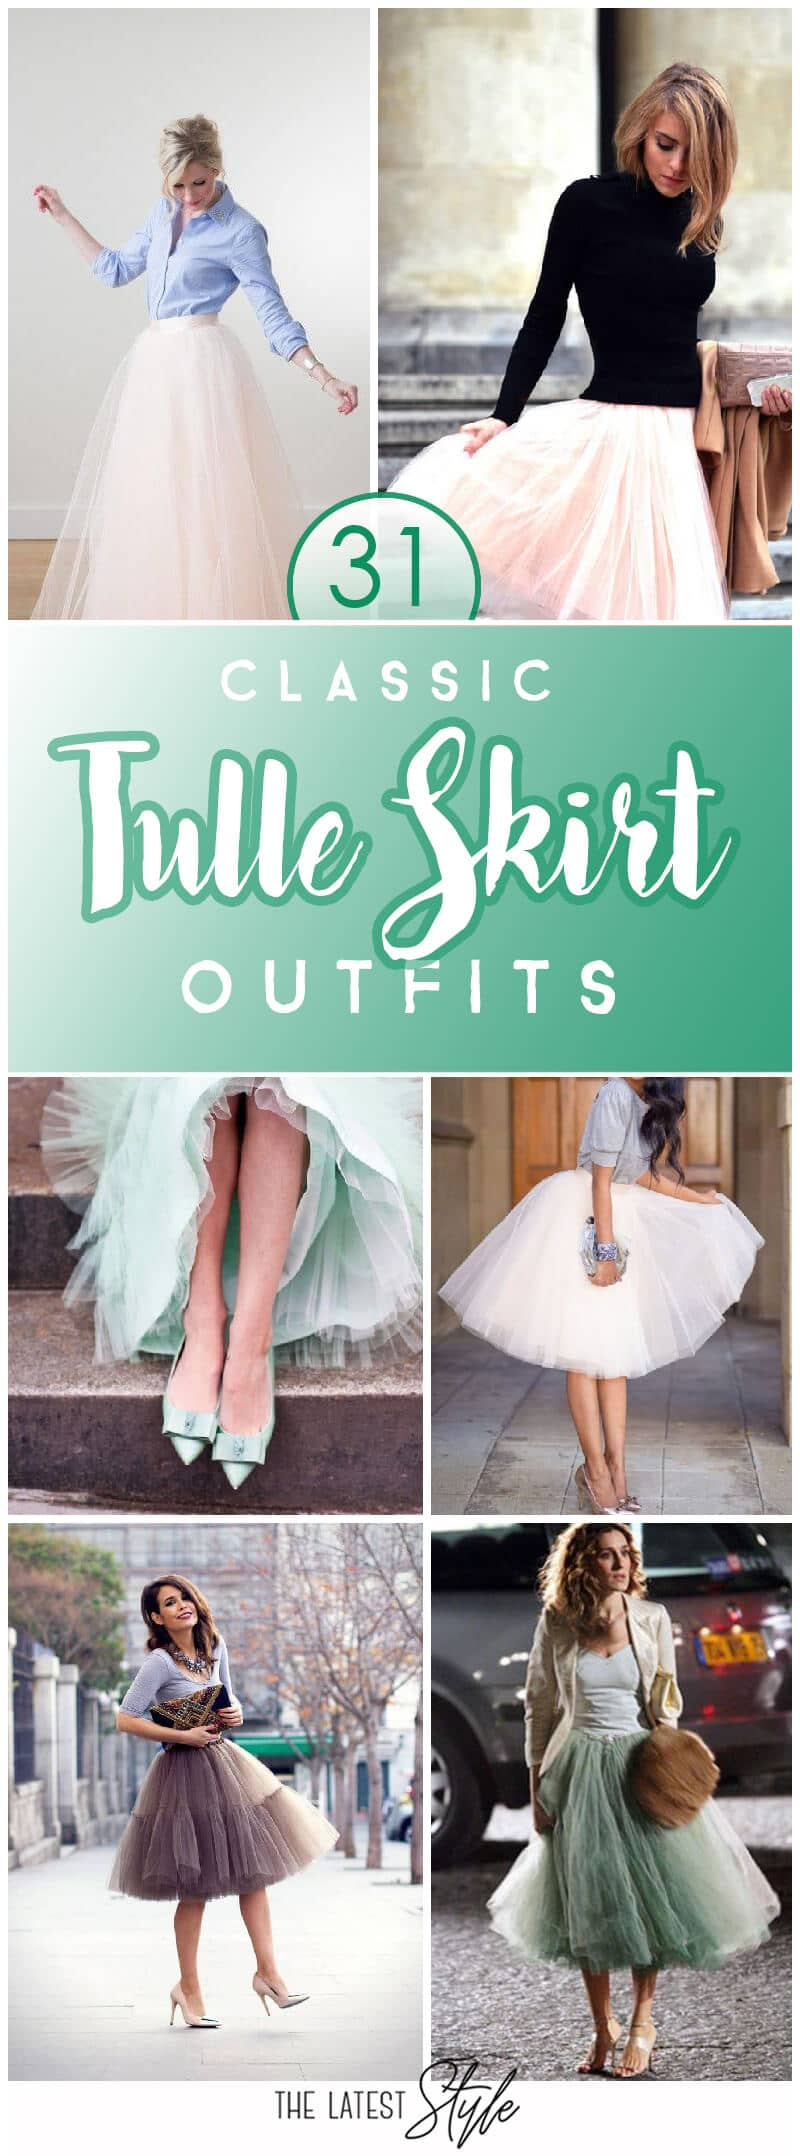 31 Tulle Skirt Outfit Ideas You'll Love